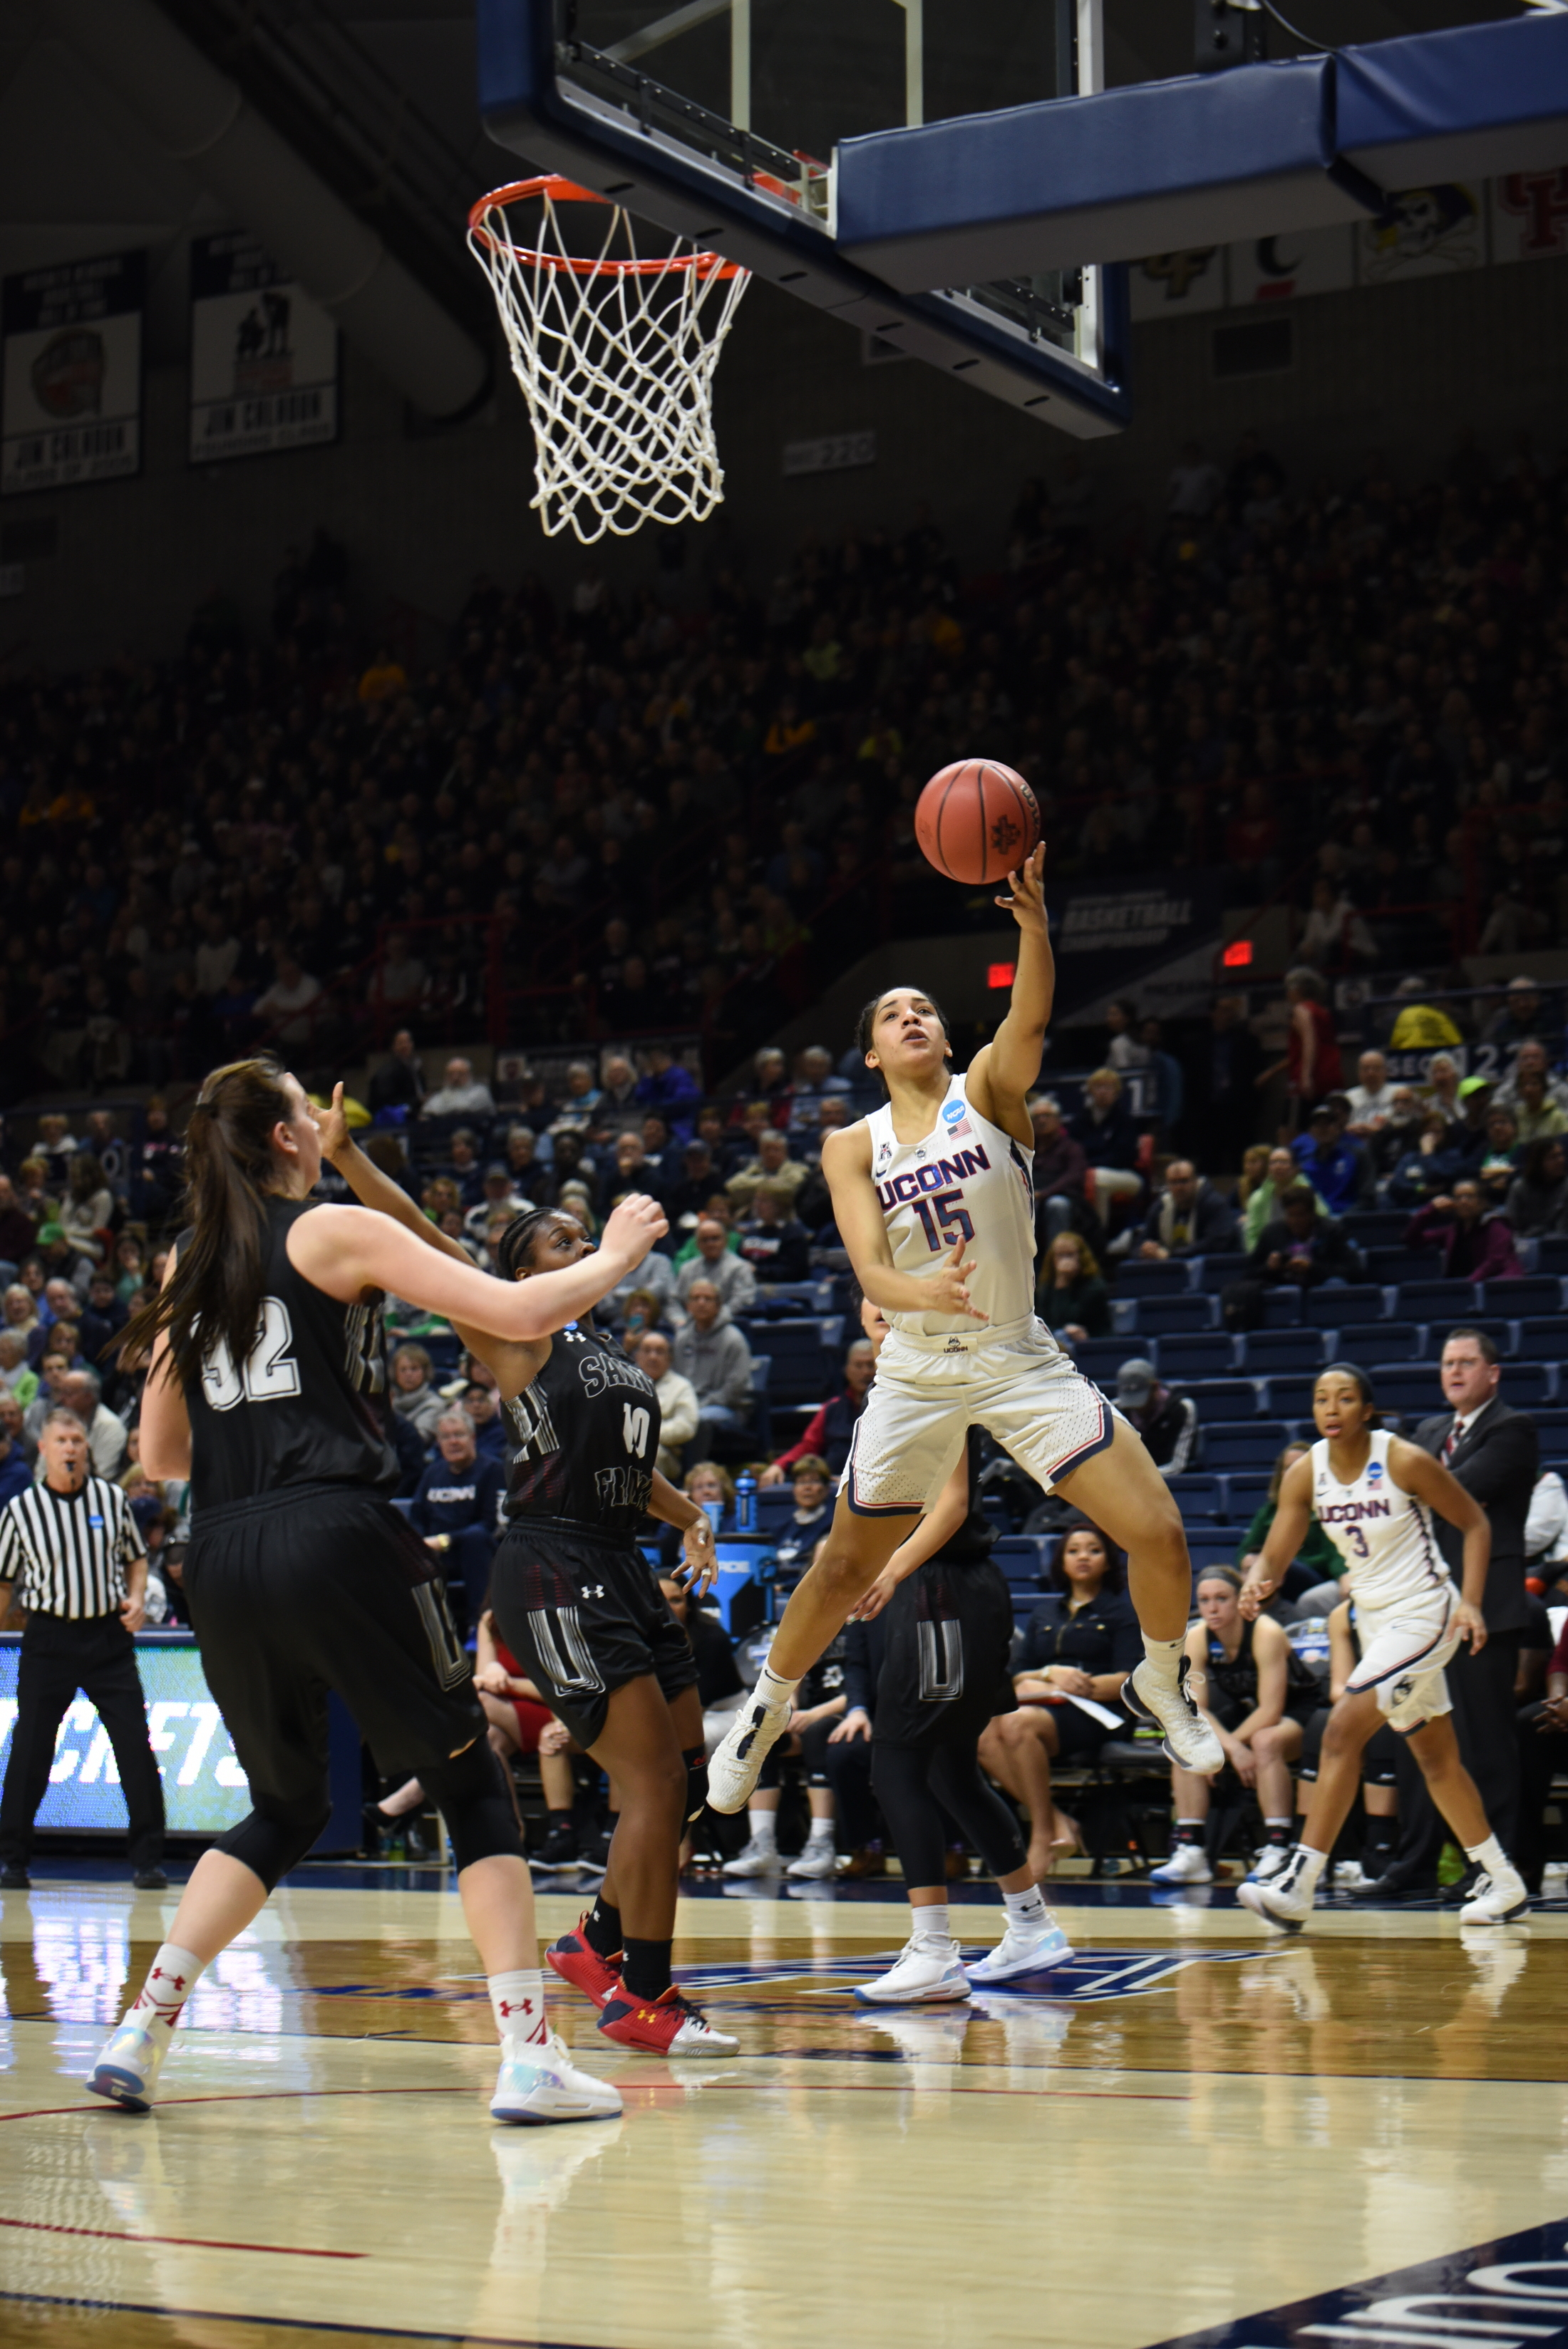 The Huskies make records as they defeat the Red Flash 140-52 on March 17,2018 for the first round of the NCAA tournament. They will be hosting Quinnipiac on Monday, March 19, 2018 at 6:30 for the second round (Charlotte Lao/The Daily Campus)